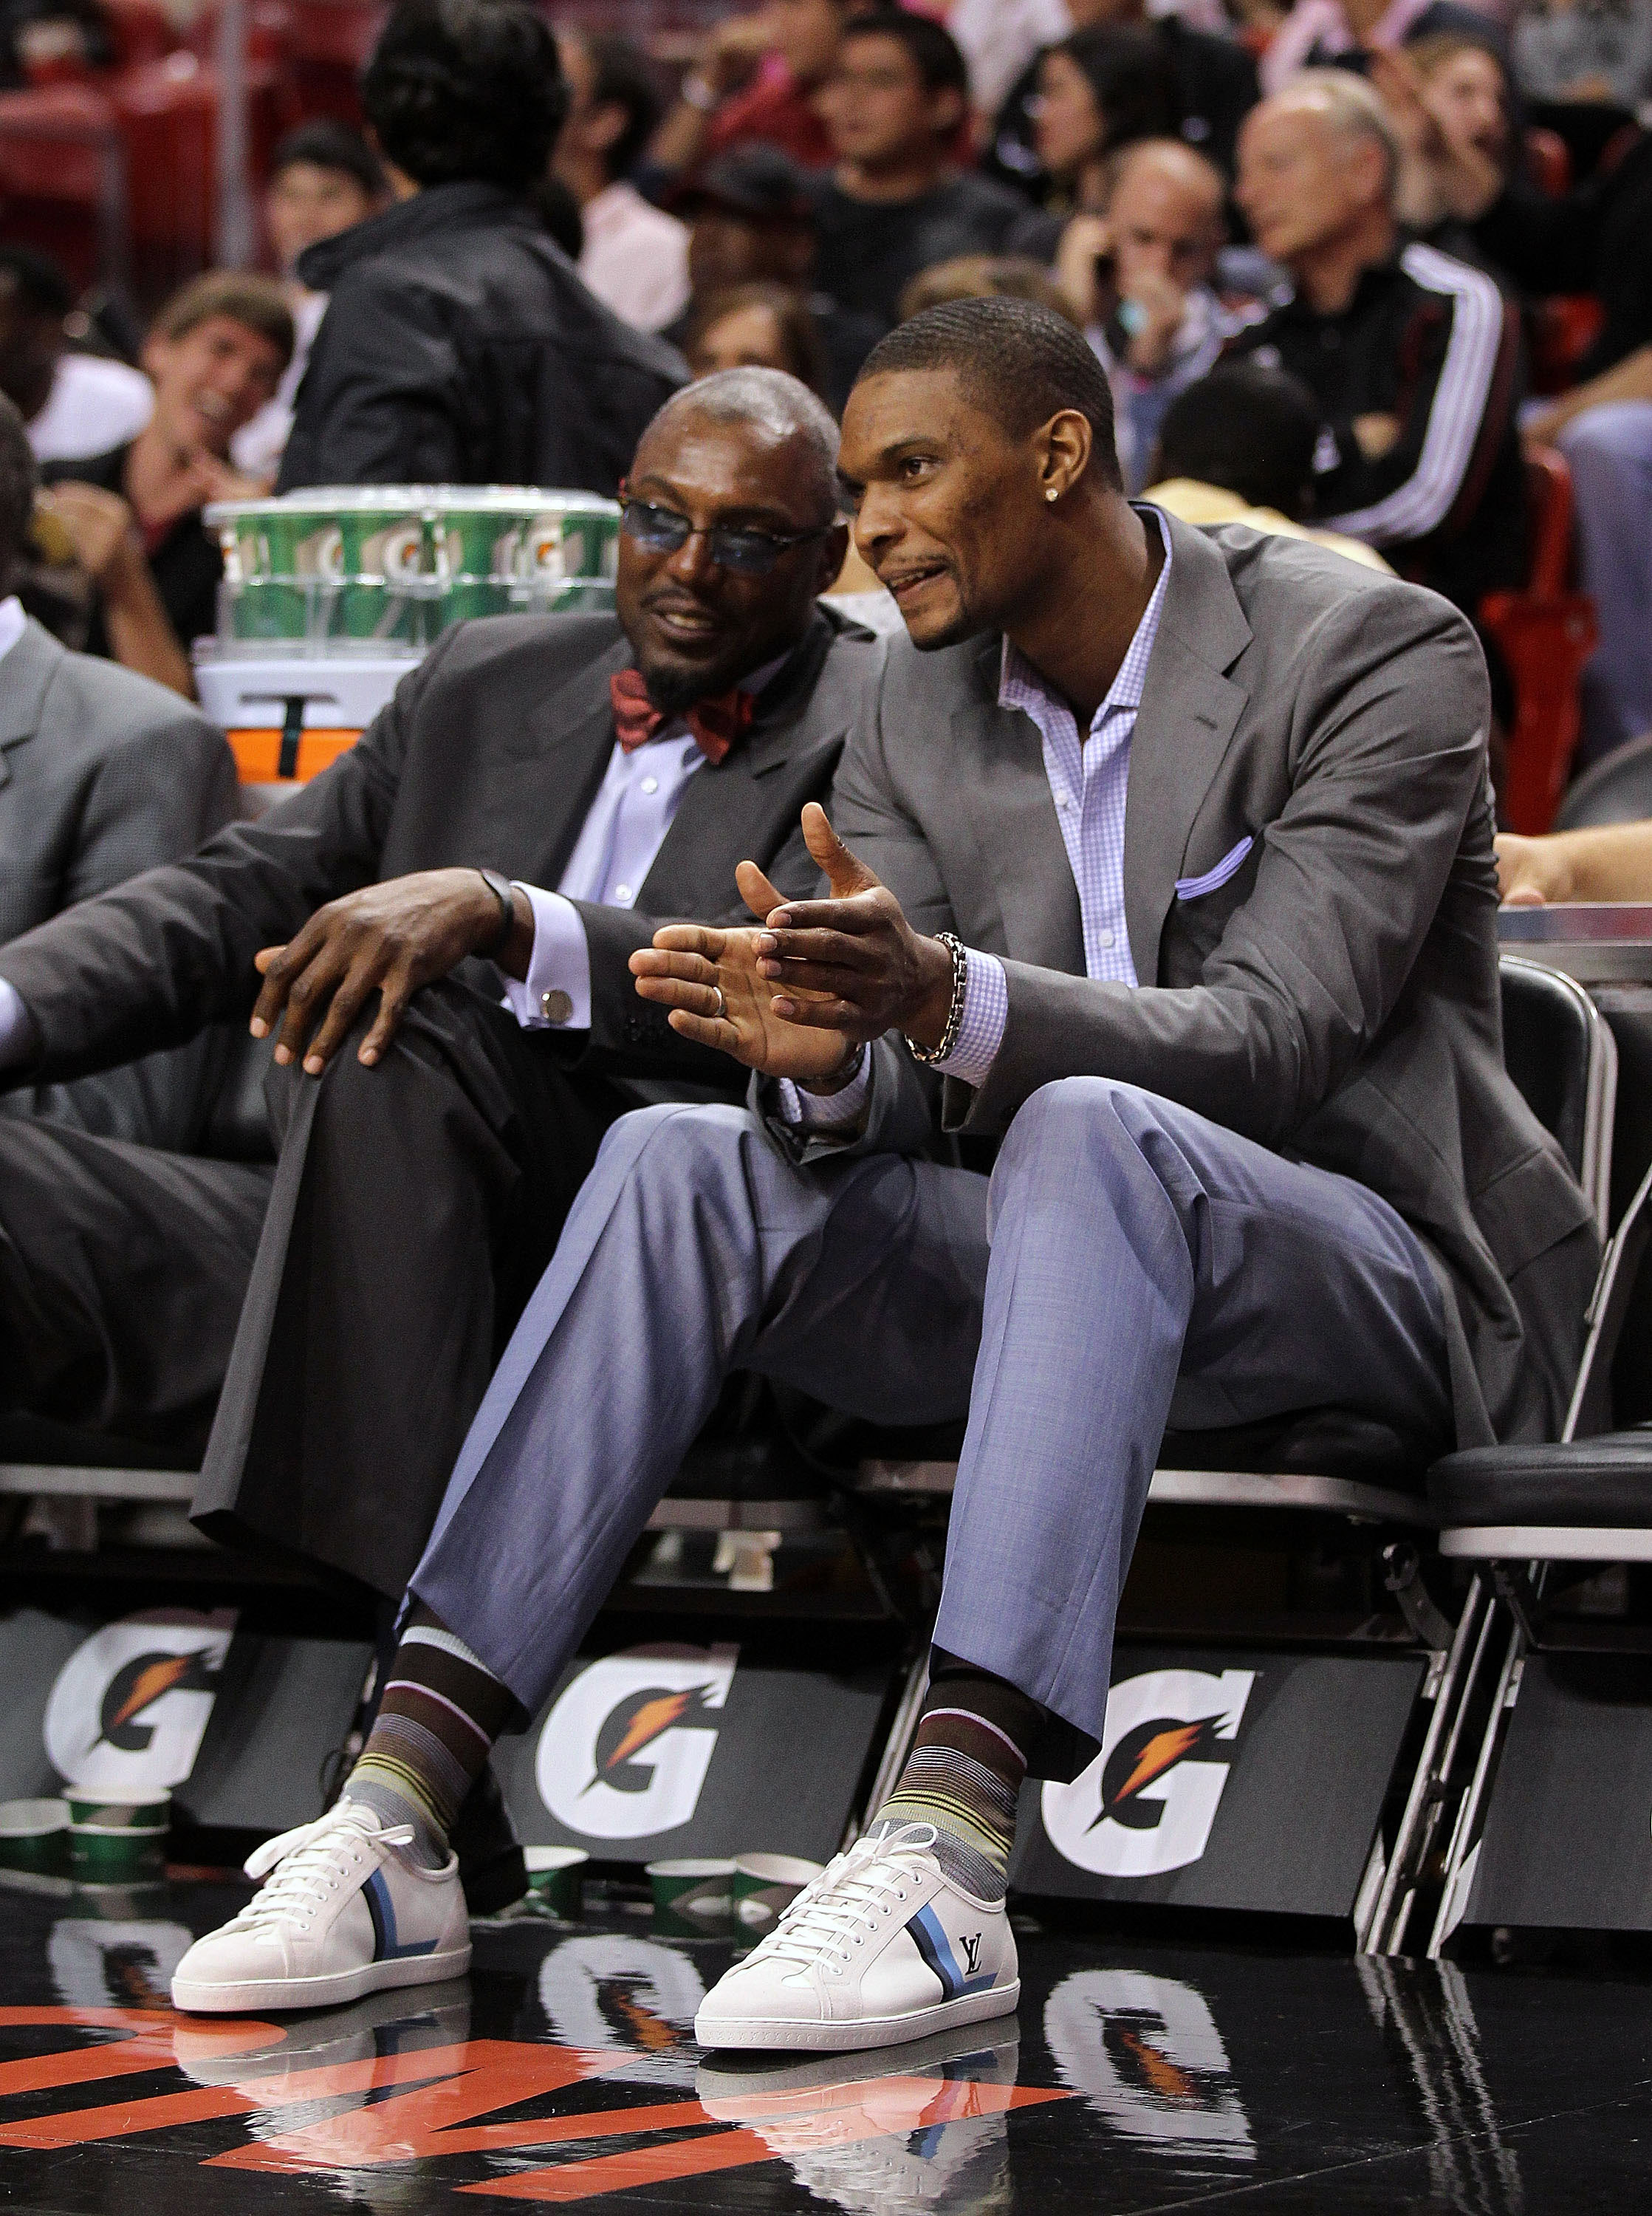 MIAMI, FL - JANUARY 22: Chris Bosh #1 of the Miami Heat talks with assistant coach Keith Askins during a game against the Toronto Raptors at American Airlines Arena on January 22, 2011 in Miami, Florida. NOTE TO USER: User expressly acknowledges and agree